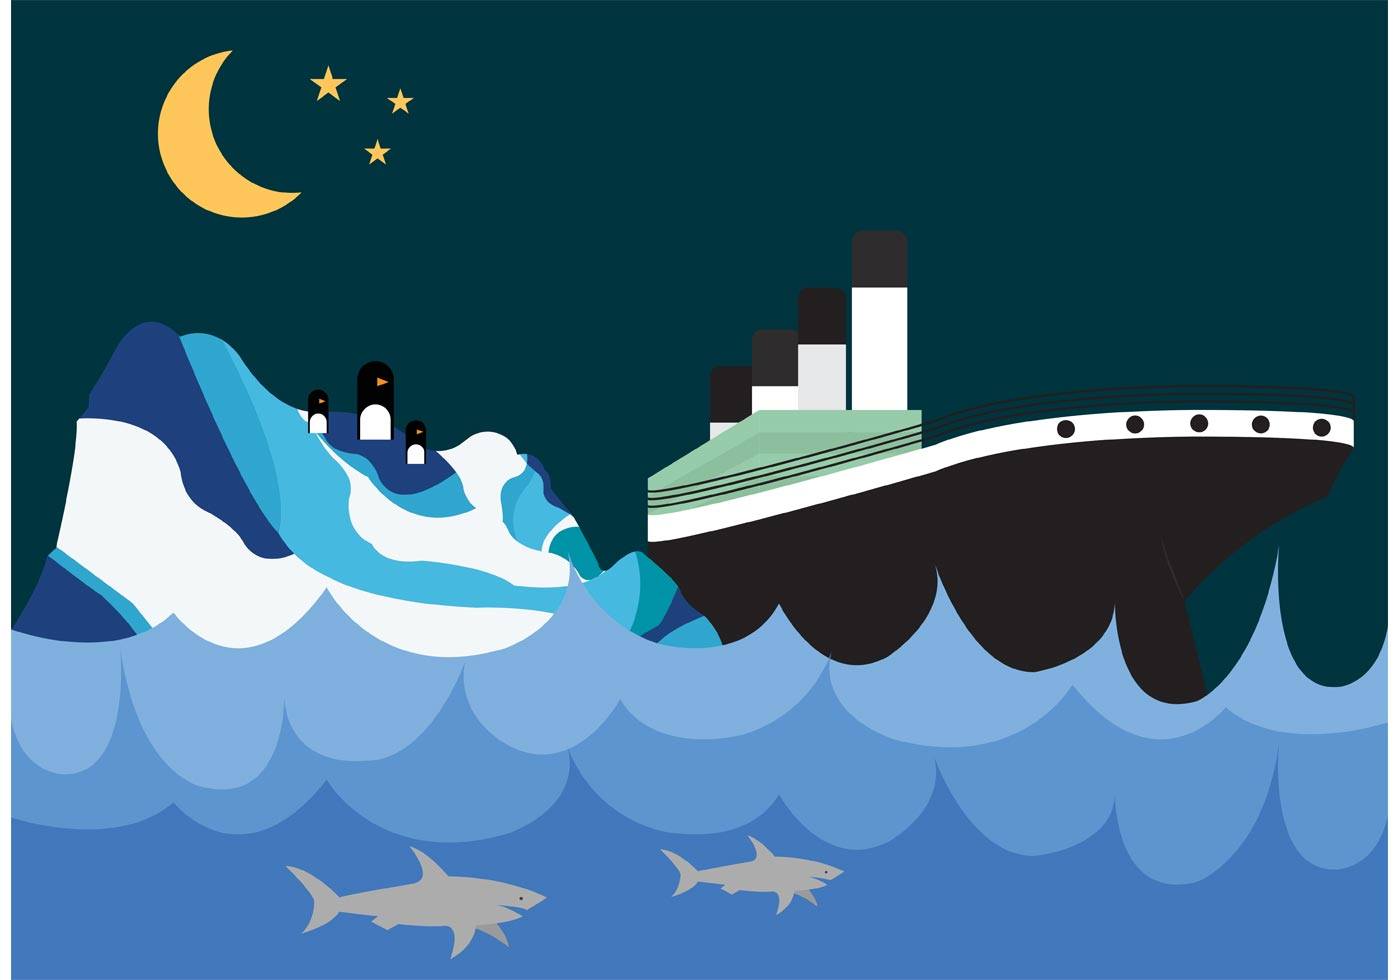 titanic and iceberg wallpaper download free vector art